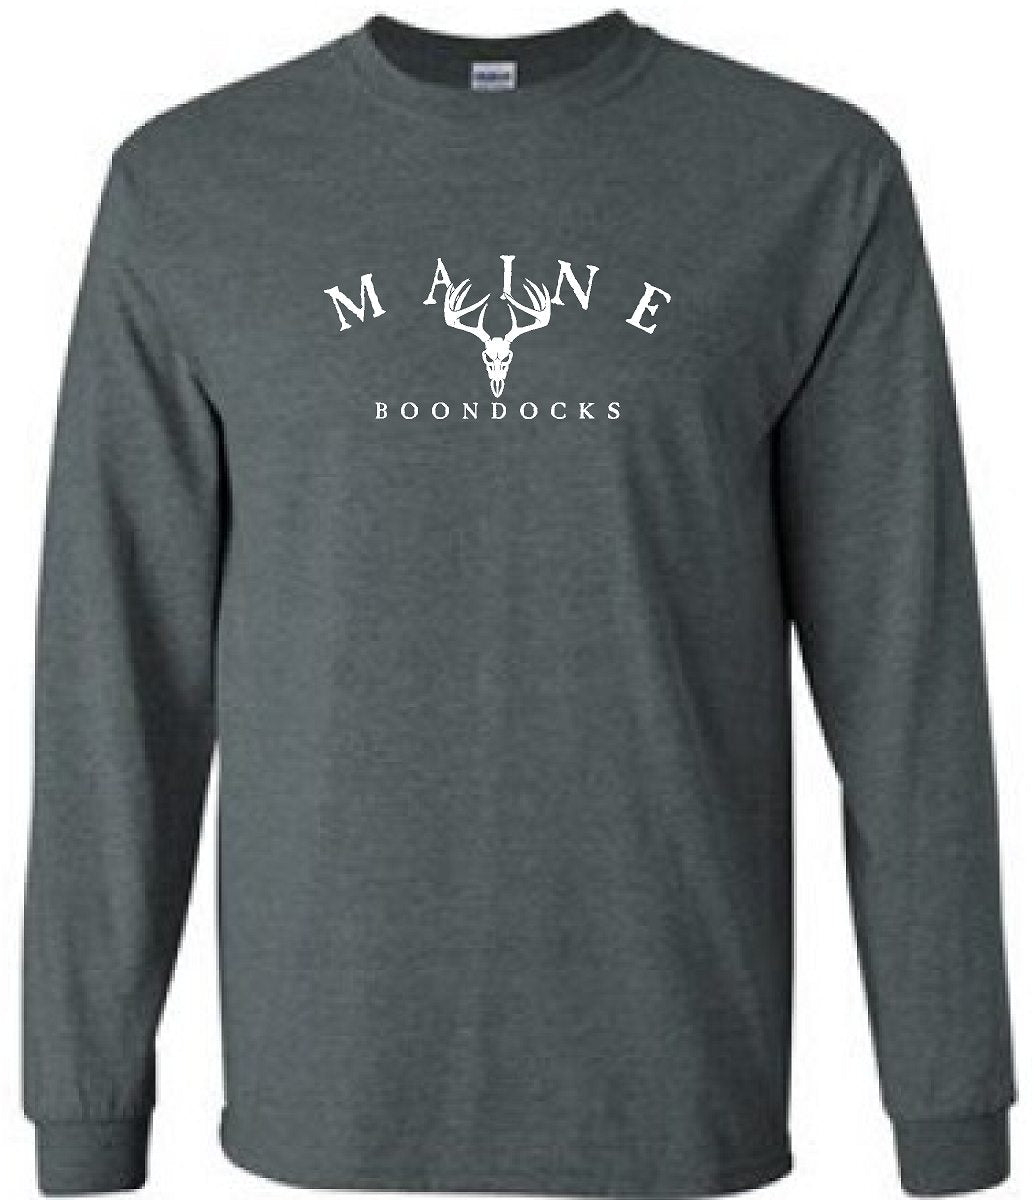 MAINE BOONDOCKS WITH DEER SKULL - CREW NECK SWEATSHIRTS